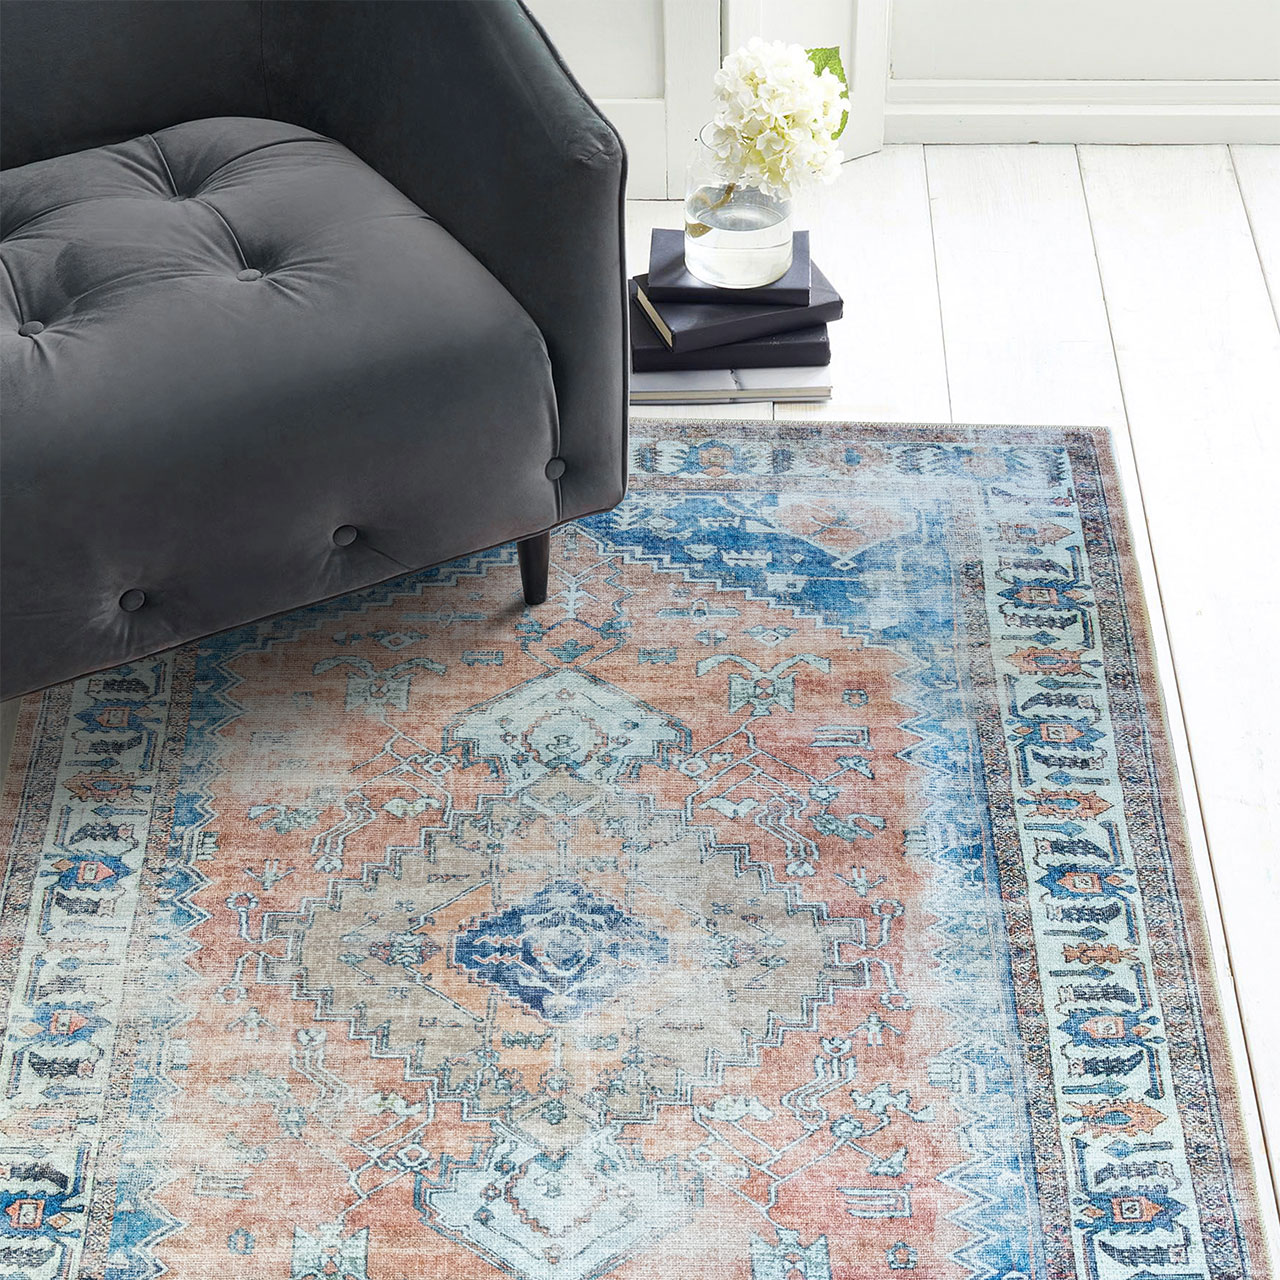 Soft Woven Rugs room